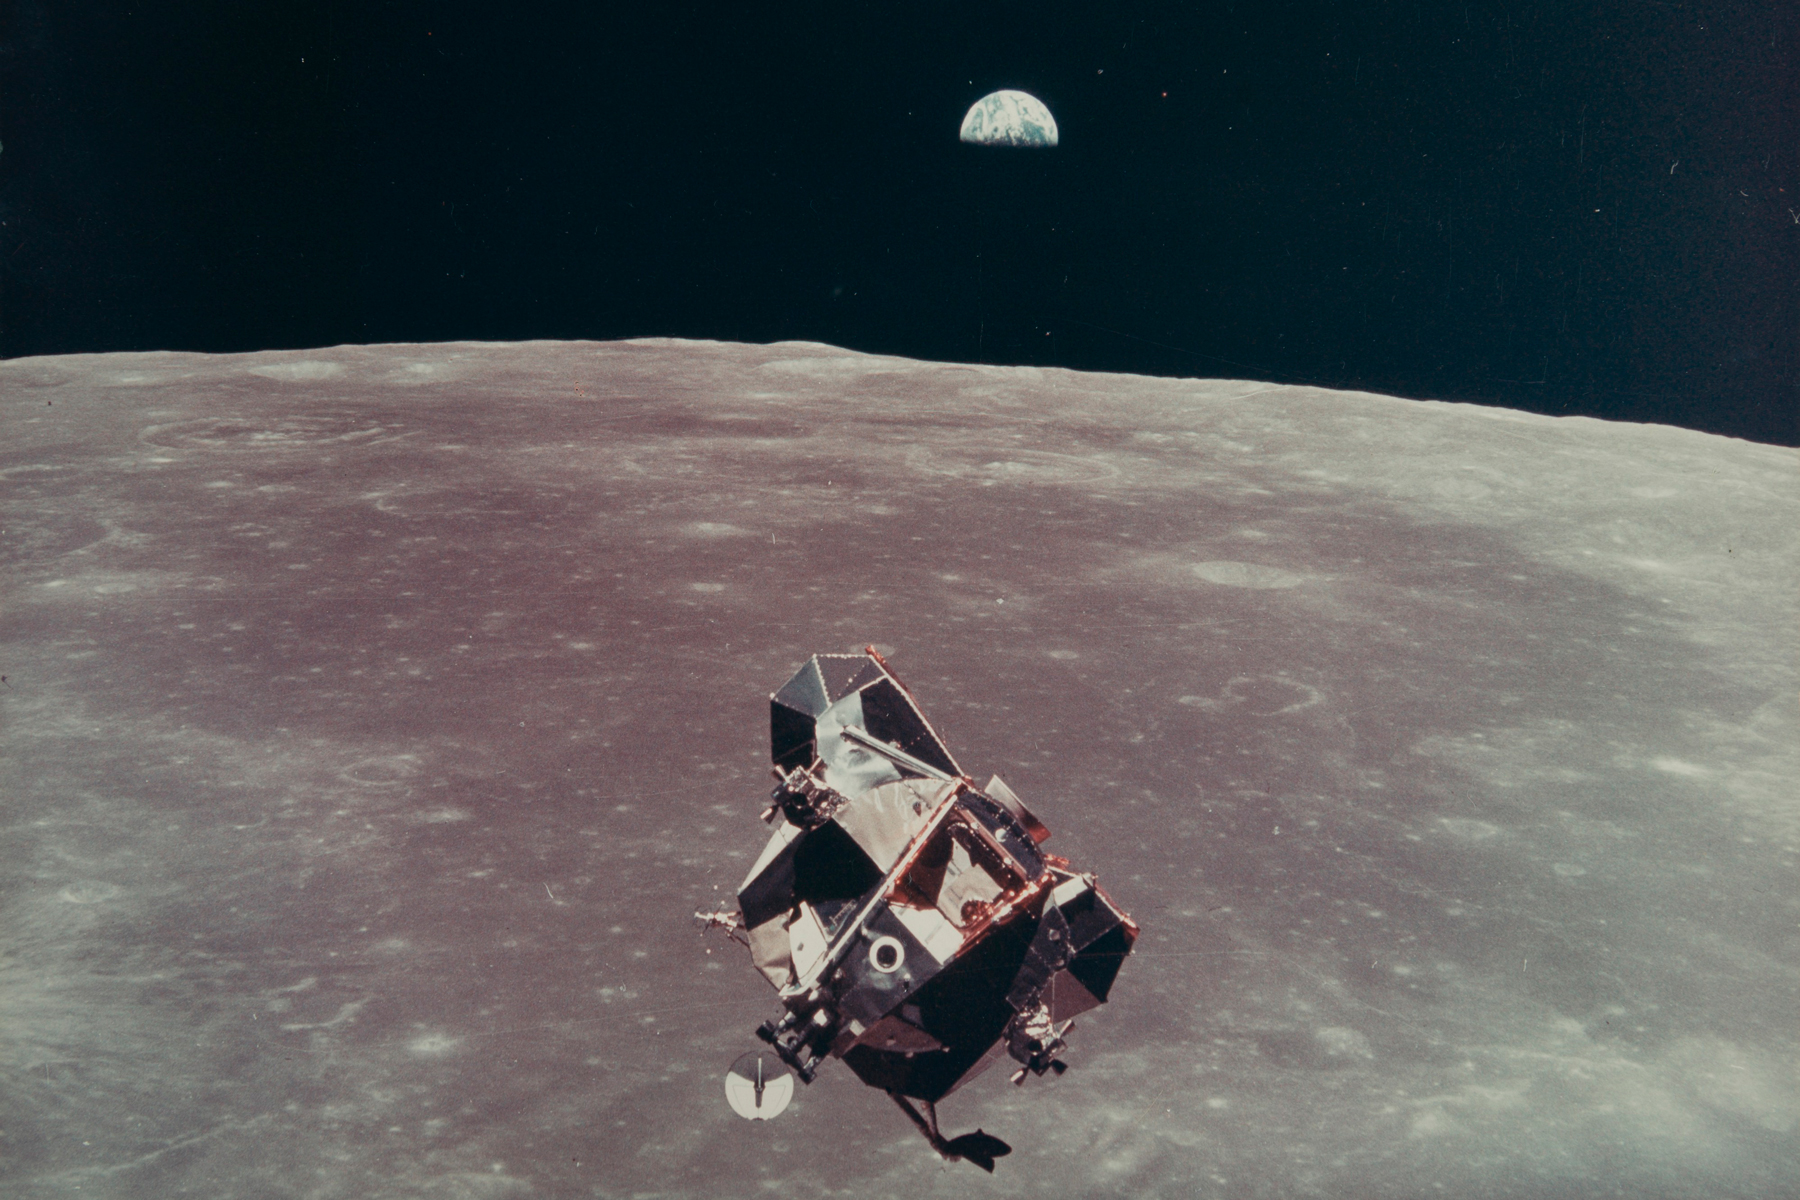 LM Eagle and Earthrise, July 16-24, 1969, MICHAEL COLLINS [APOLLO 11]